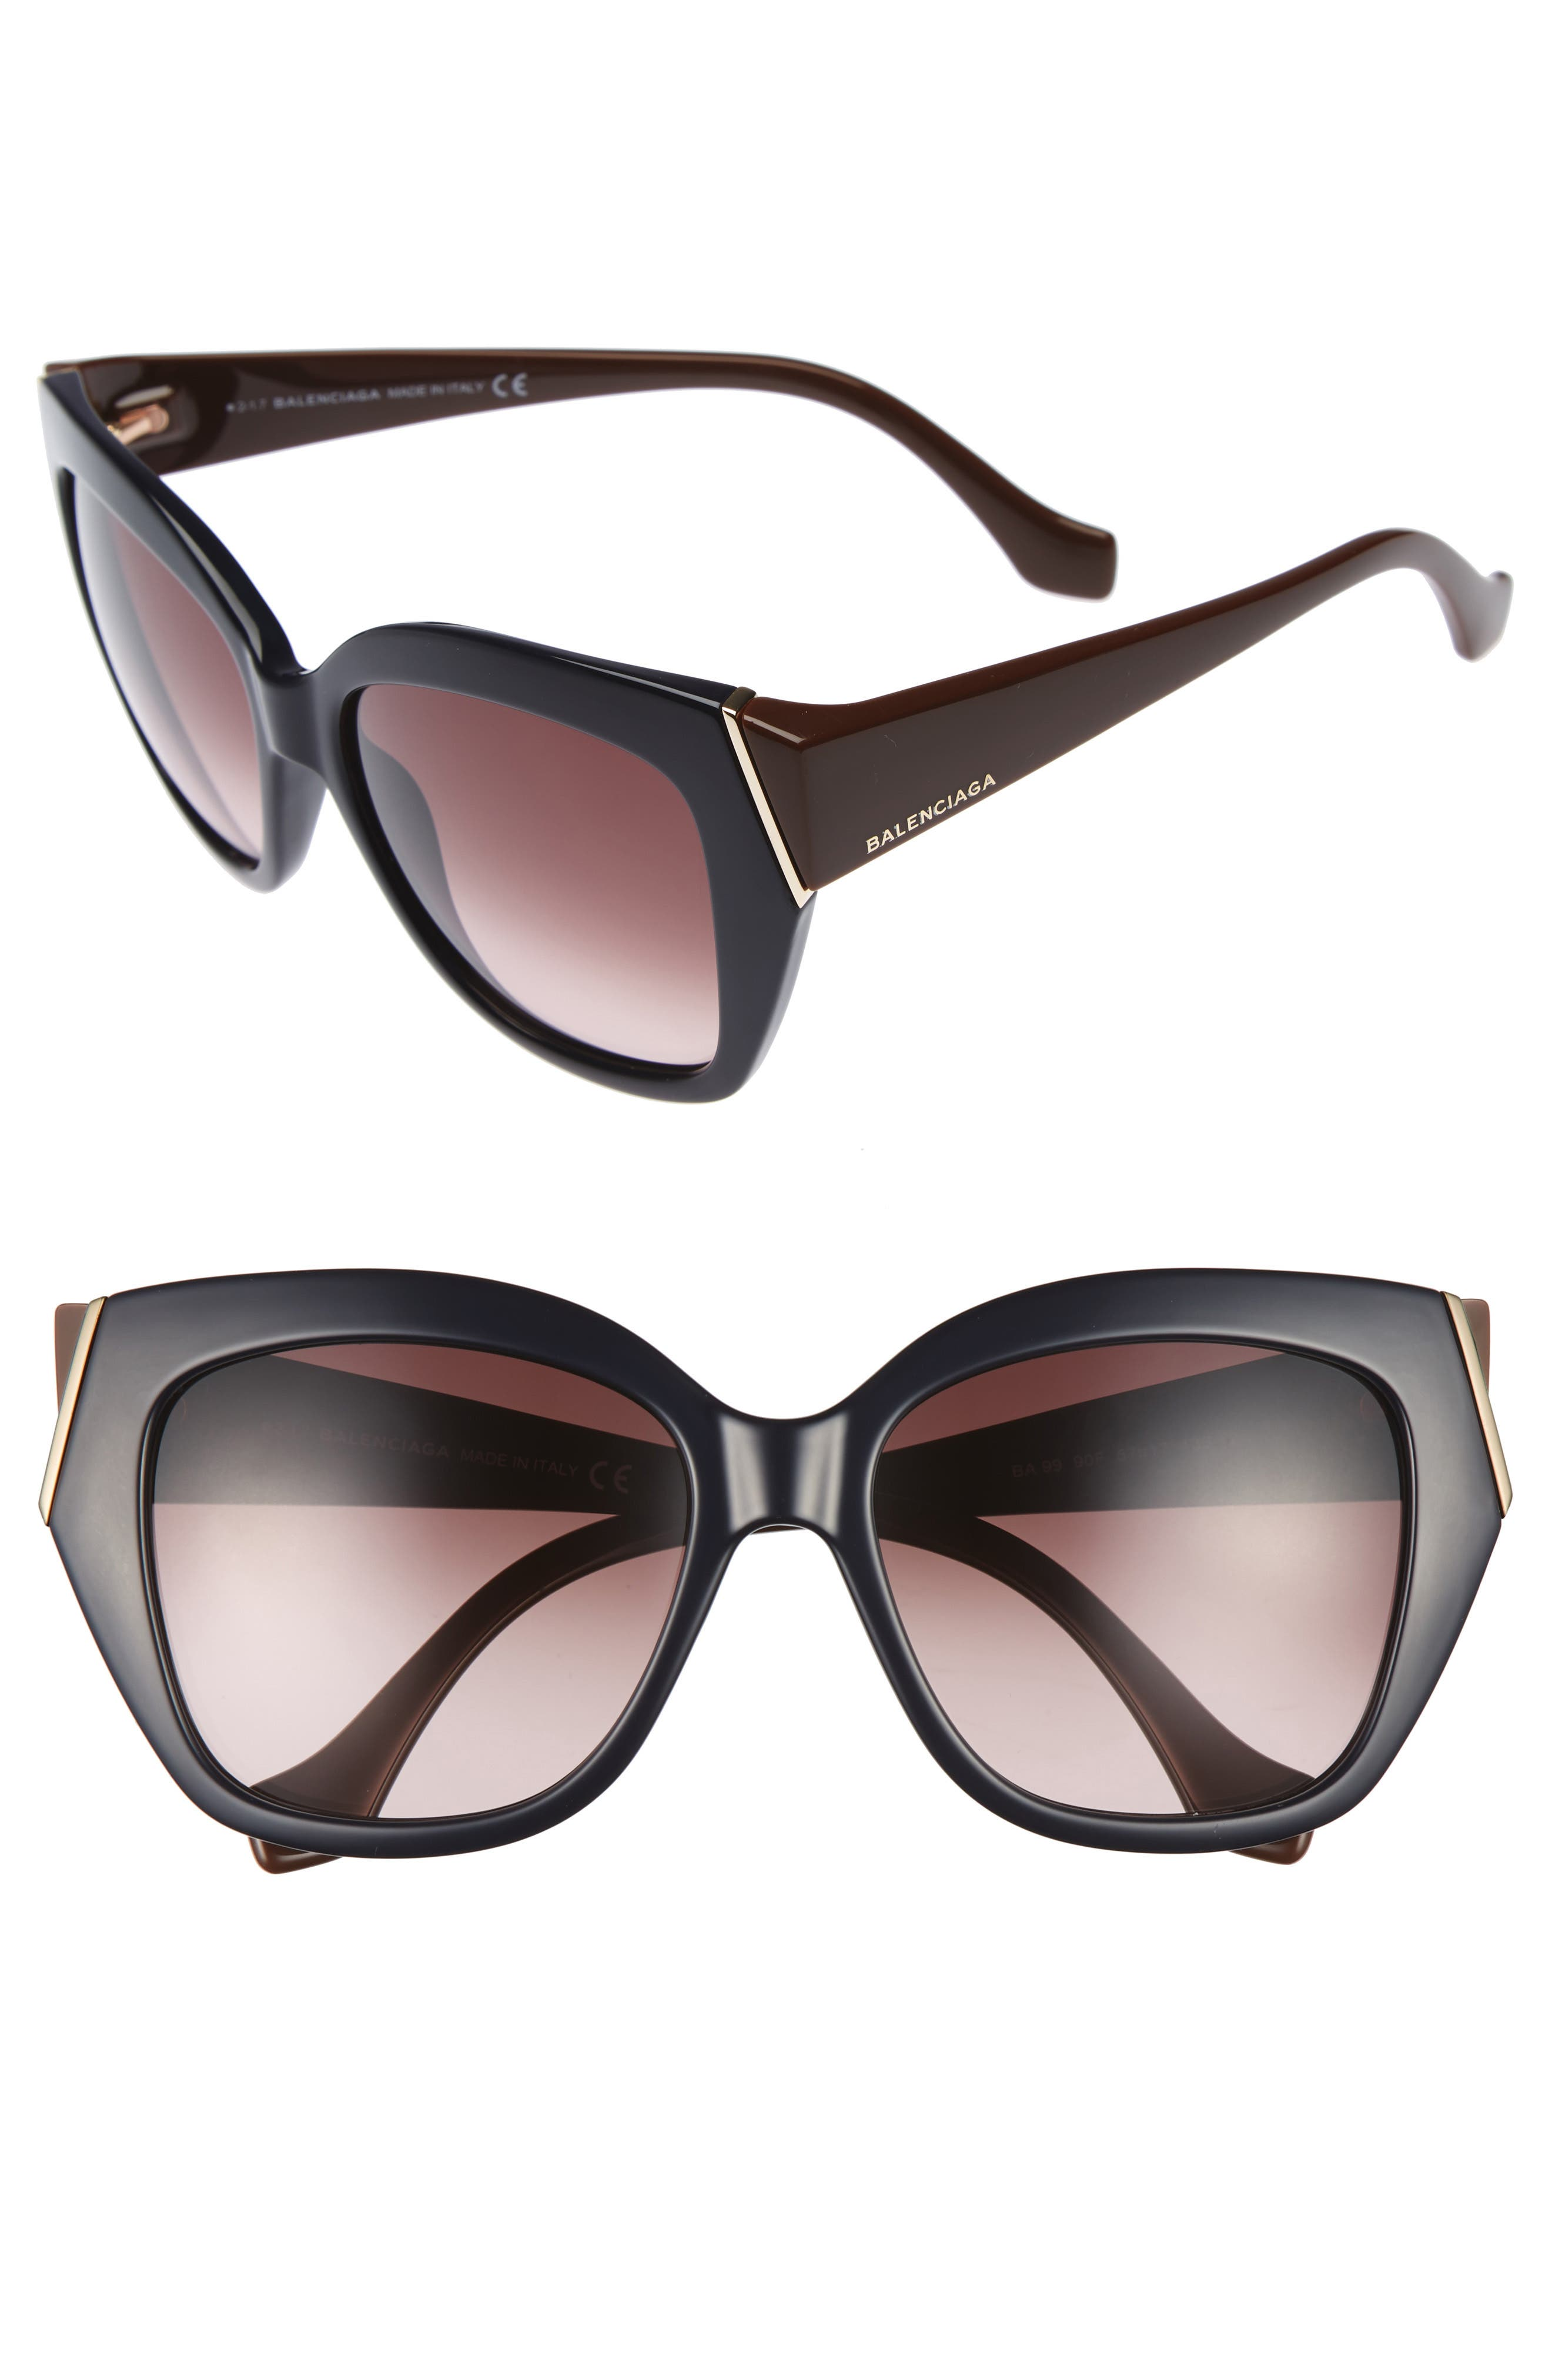 Main Image - Balenciaga 57mm Cat Eye Sunglasses